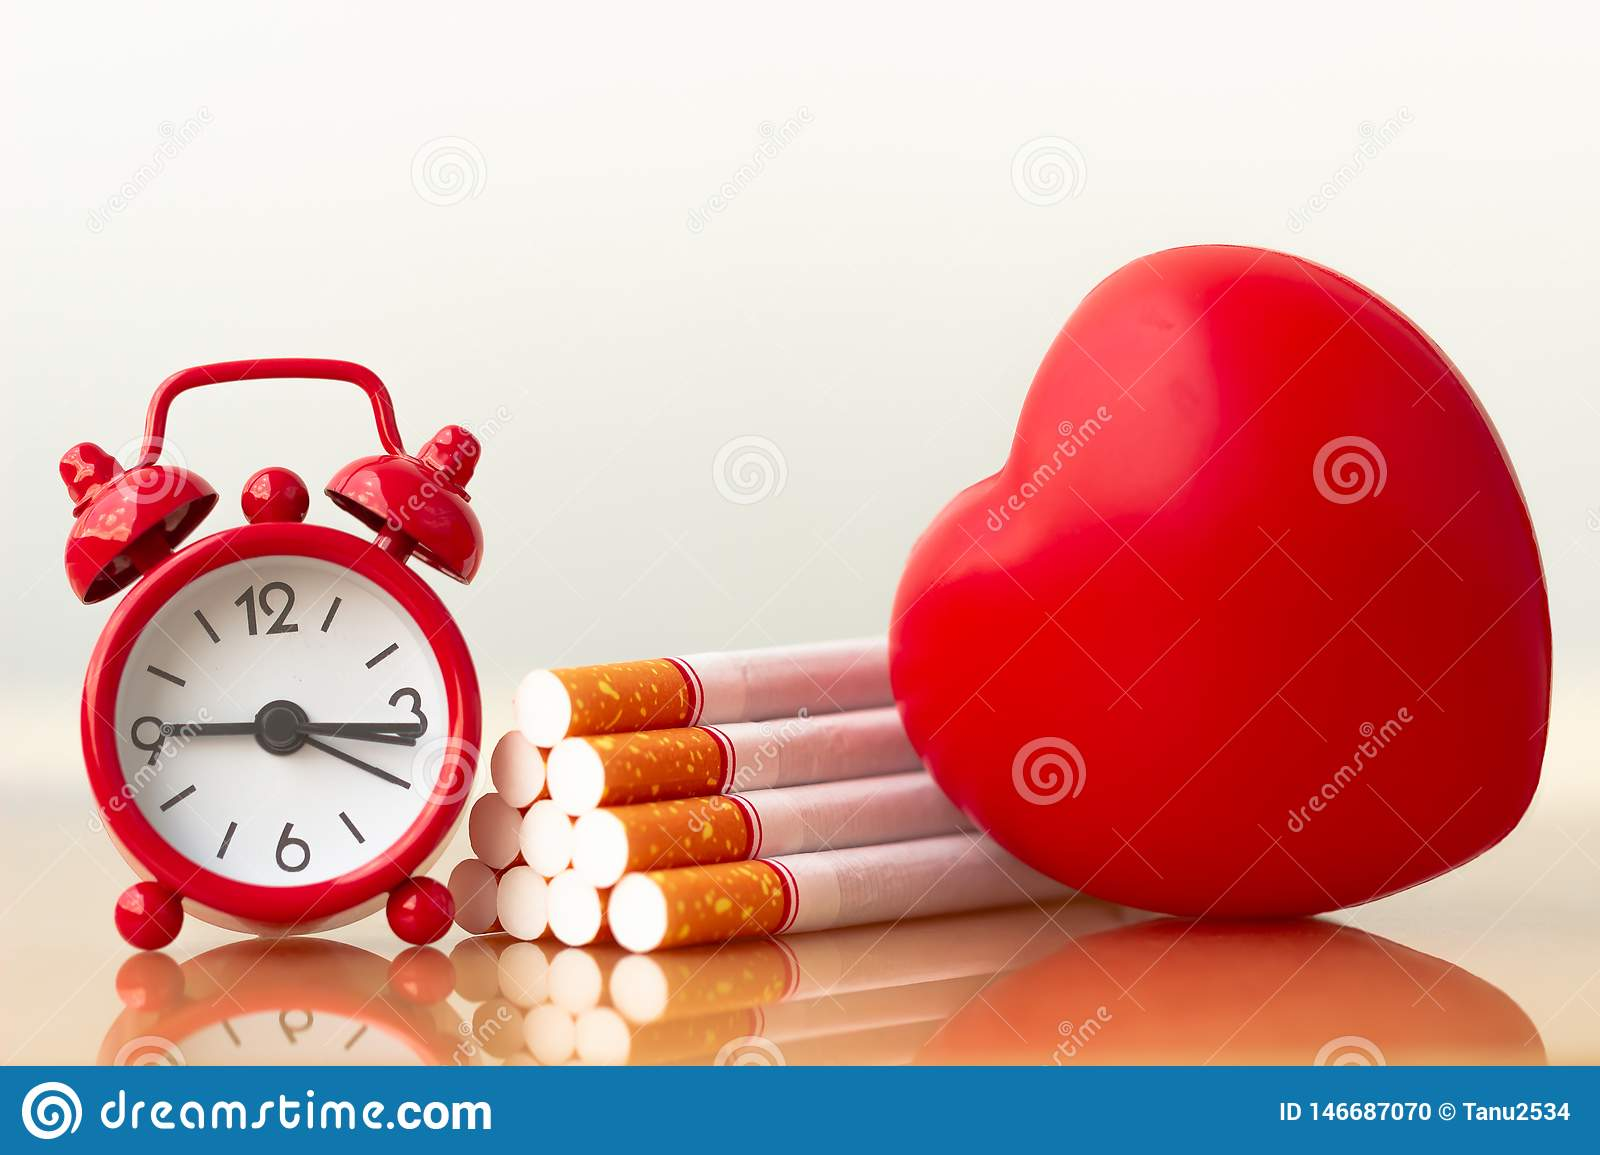 Red heart and cigarettes. Smoking cigarette destroying health.